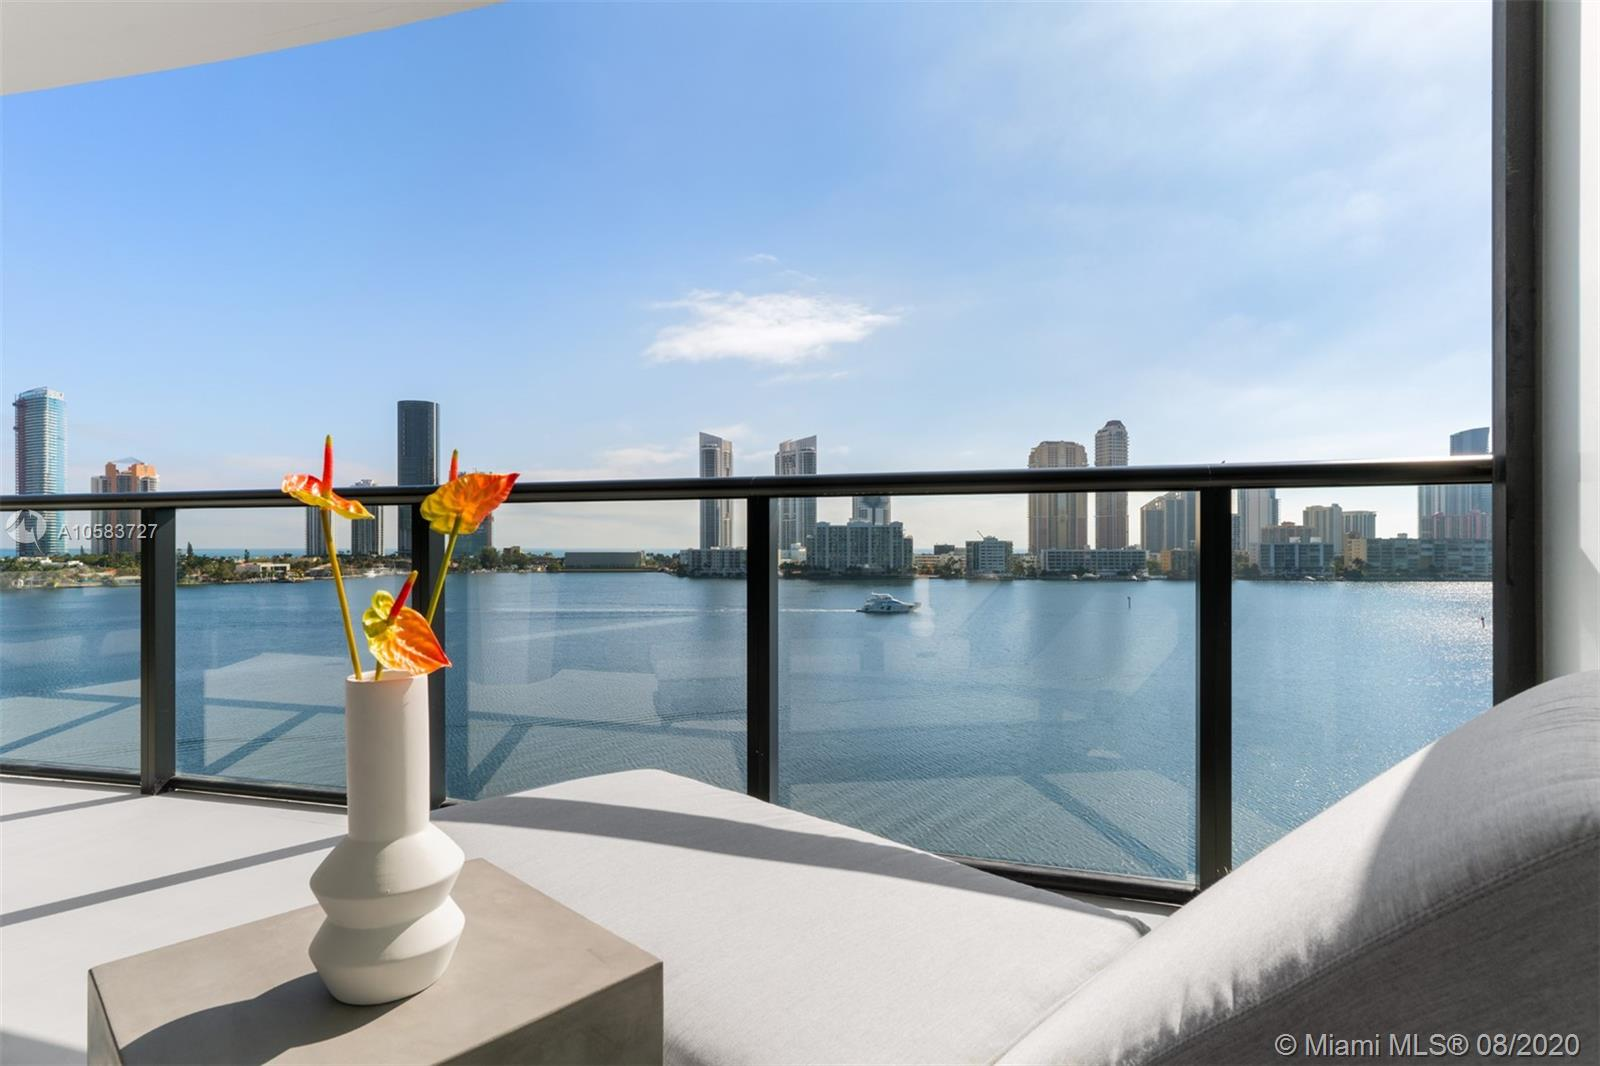 Brand new beautifully designed residence in Prive, Aventura's newest jewel. Magnificent 4 bedrooms and 5.5 bath residence with over 4000 SF. Of living area. Beautiful flooring and lighting details throughout, custom closets and doors, and exquisite designer furnishings. Incredible building amenities include marina, tennis, private beach, billiards, teen and children's room, restaurant, bar and spa. Ready for occupancy October 1st! Please call us for additional details!